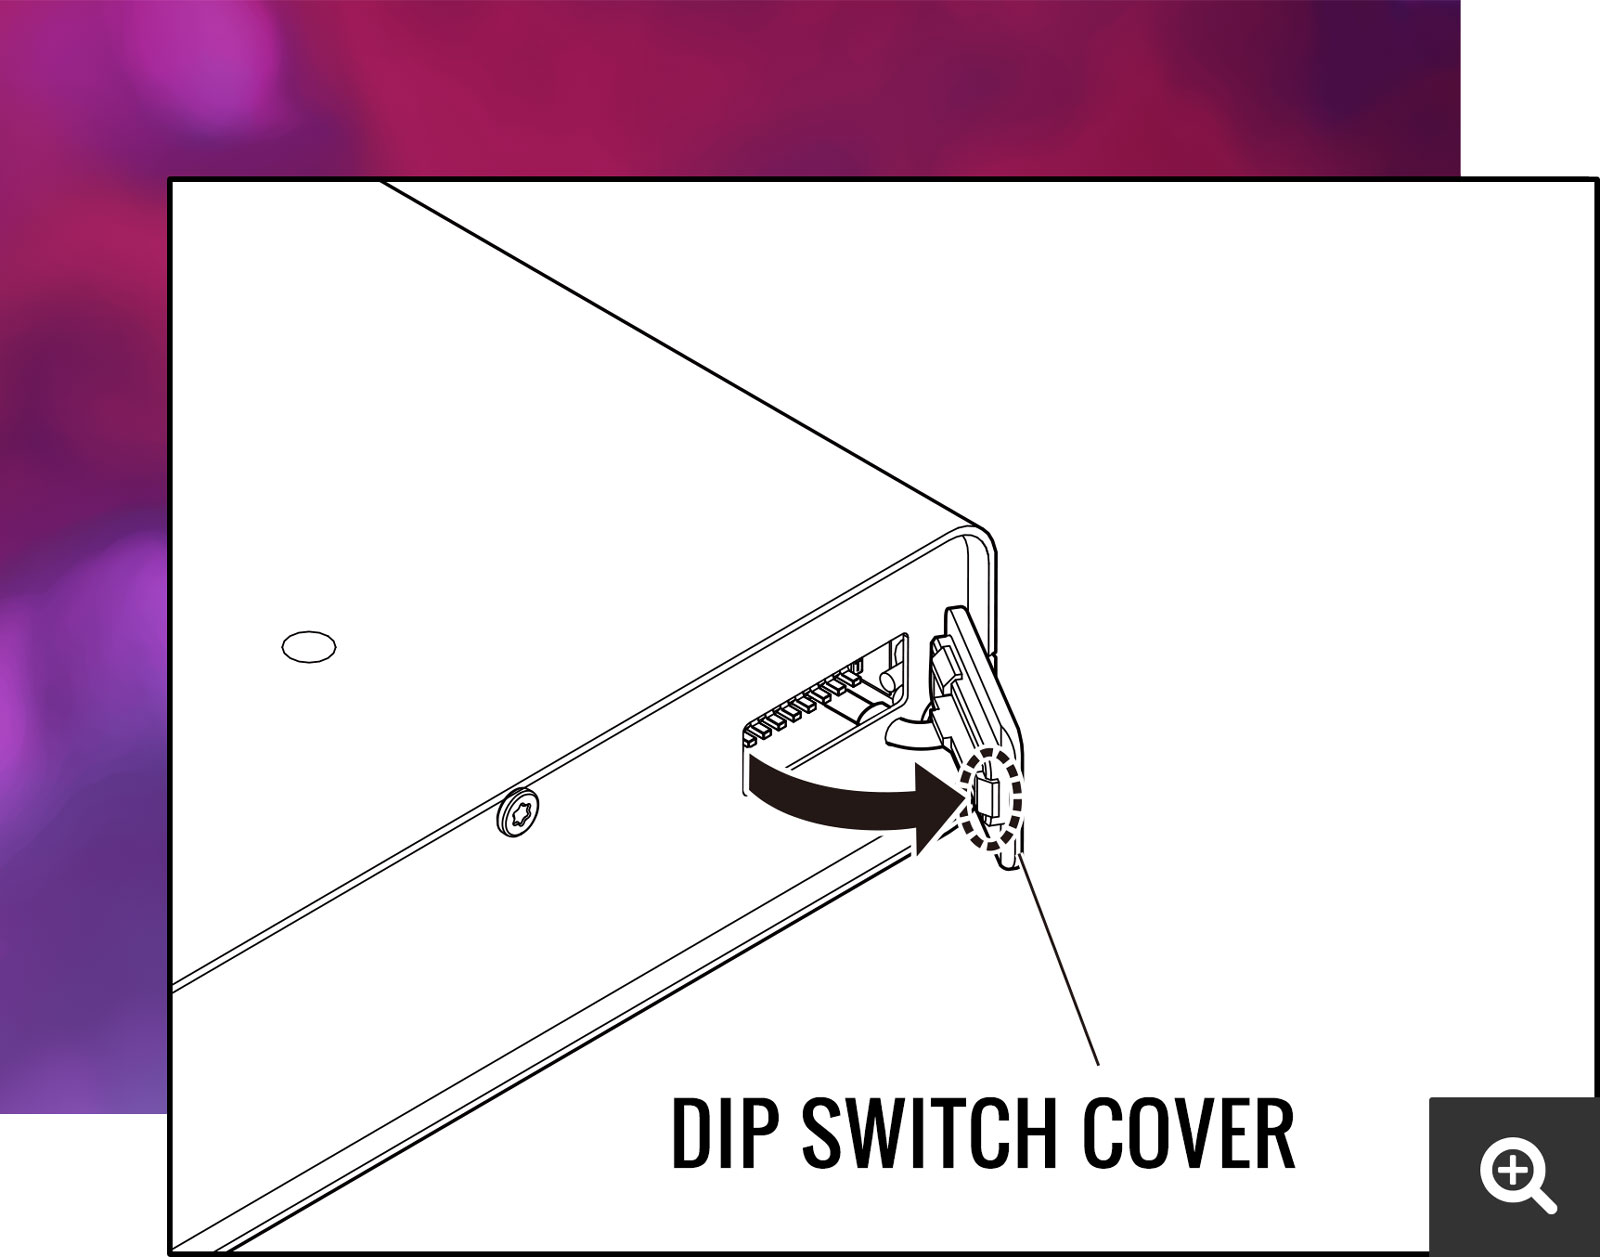 Dip Switch Cover